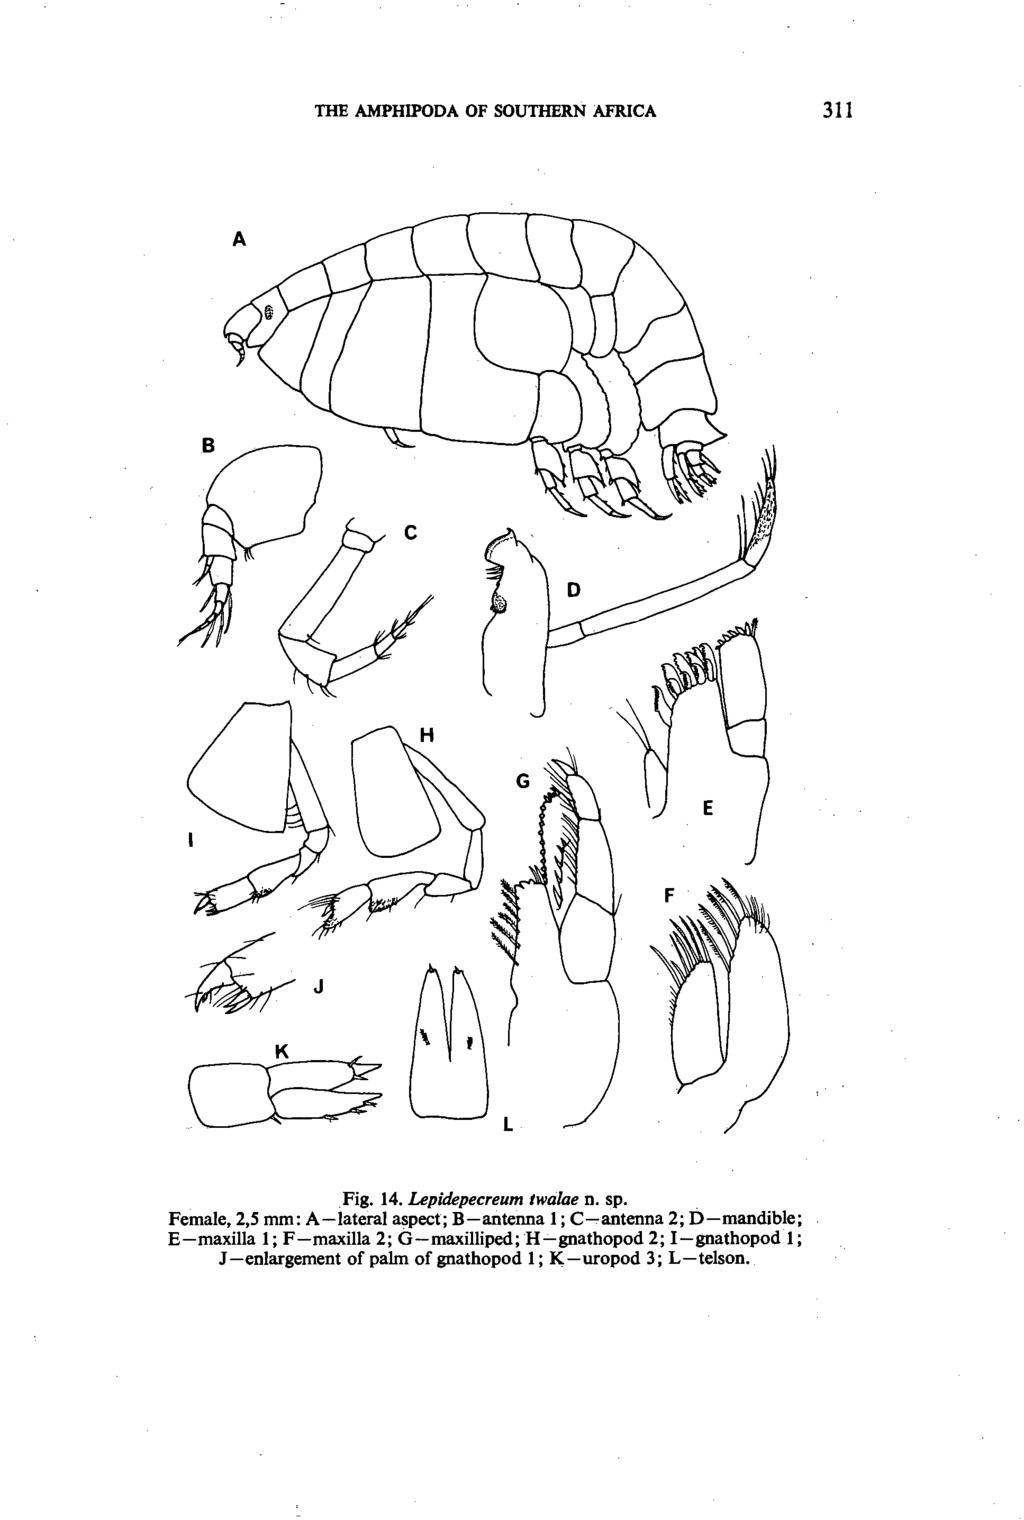 THE AMPHIPODA OF SOUTHERN AFRICA 311 Fig. 14. Lepidepecreum twalae n. sp.